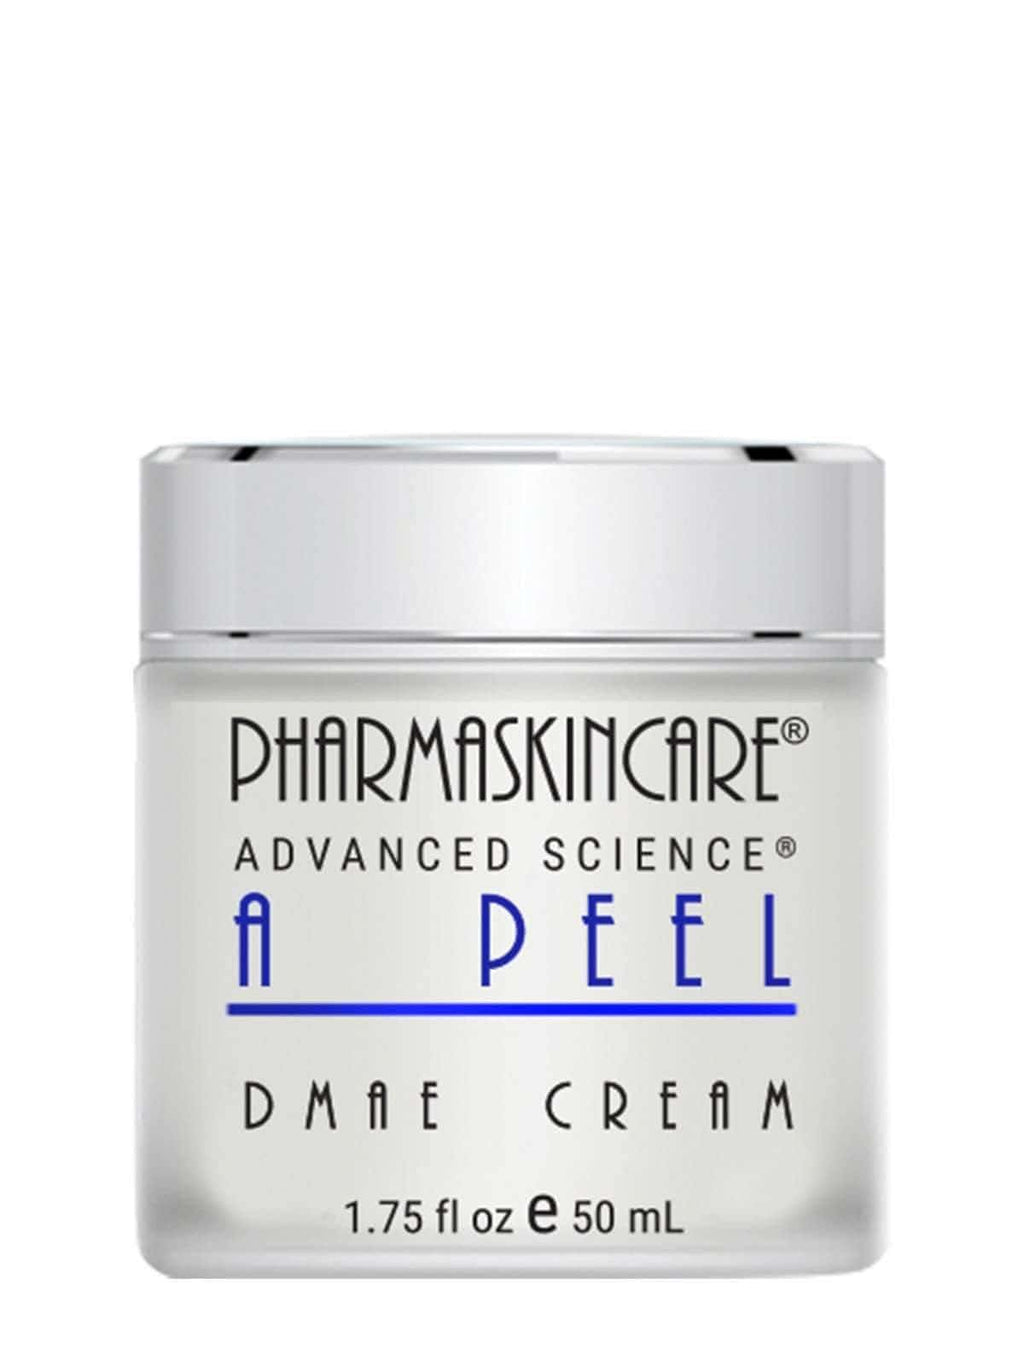 A Peel DMAE Cream - Pharmaskincare